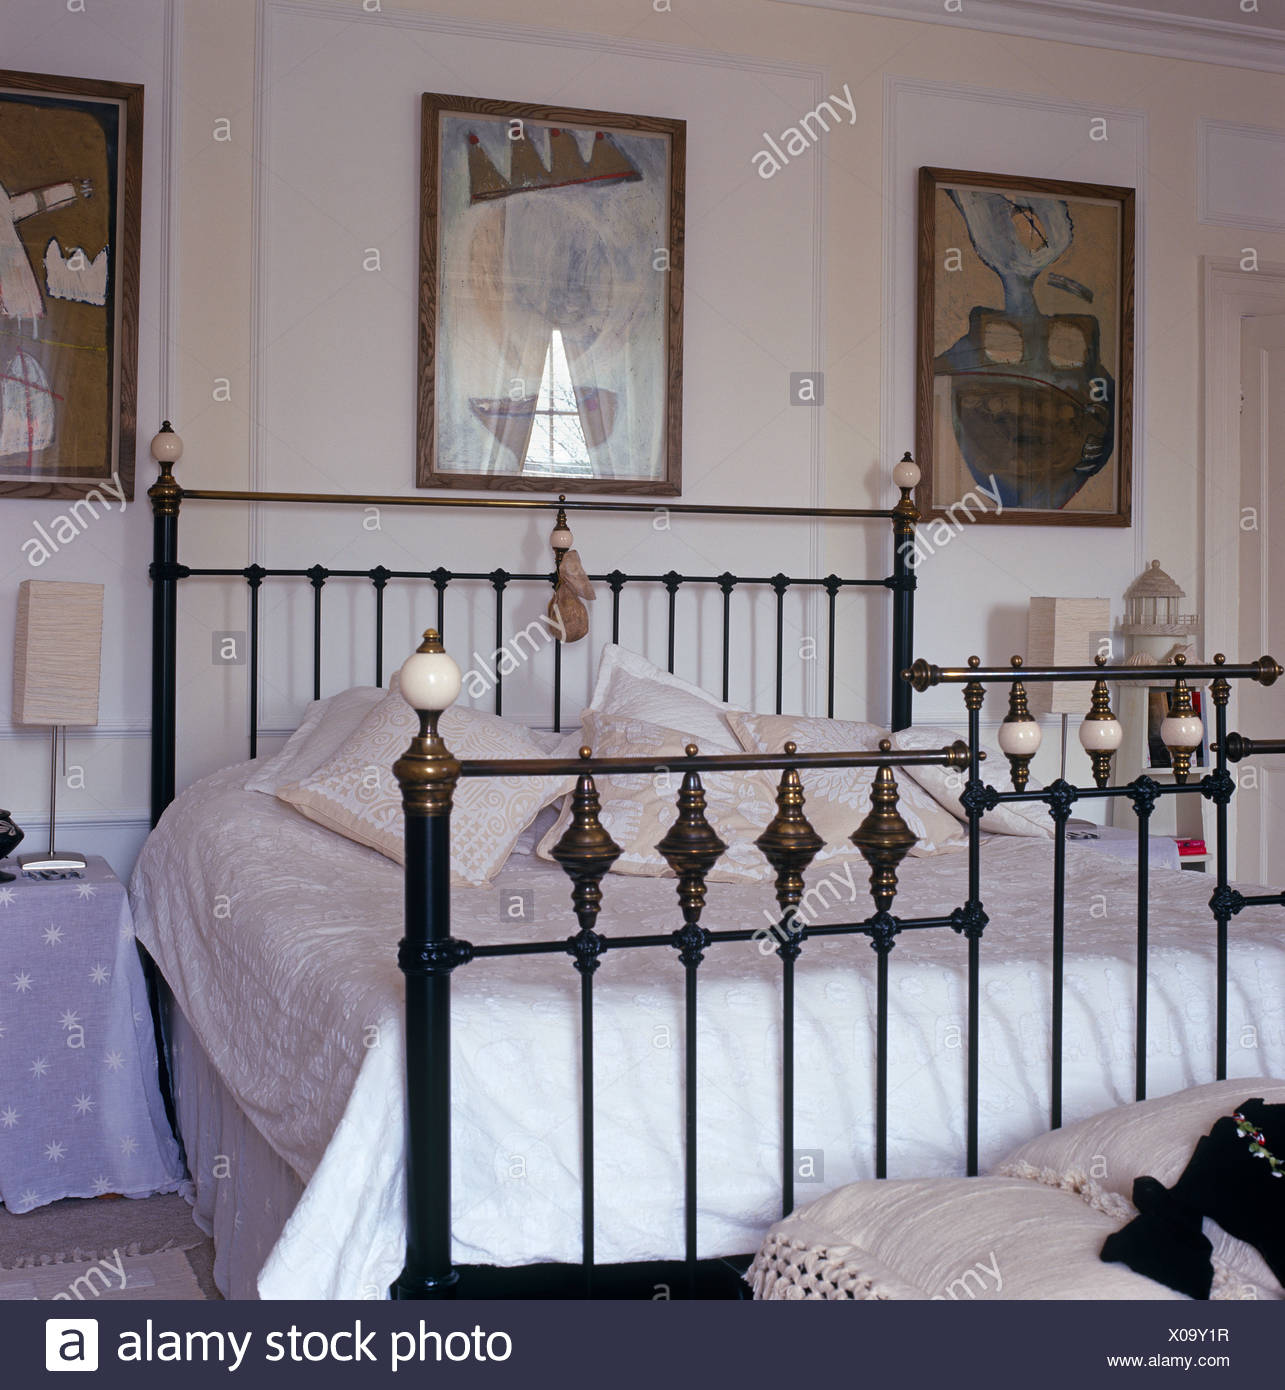 Letto Matrimoniale Ferro Battuto Antico.Three Artworks Above Antique Wrought Iron Double Bed With White